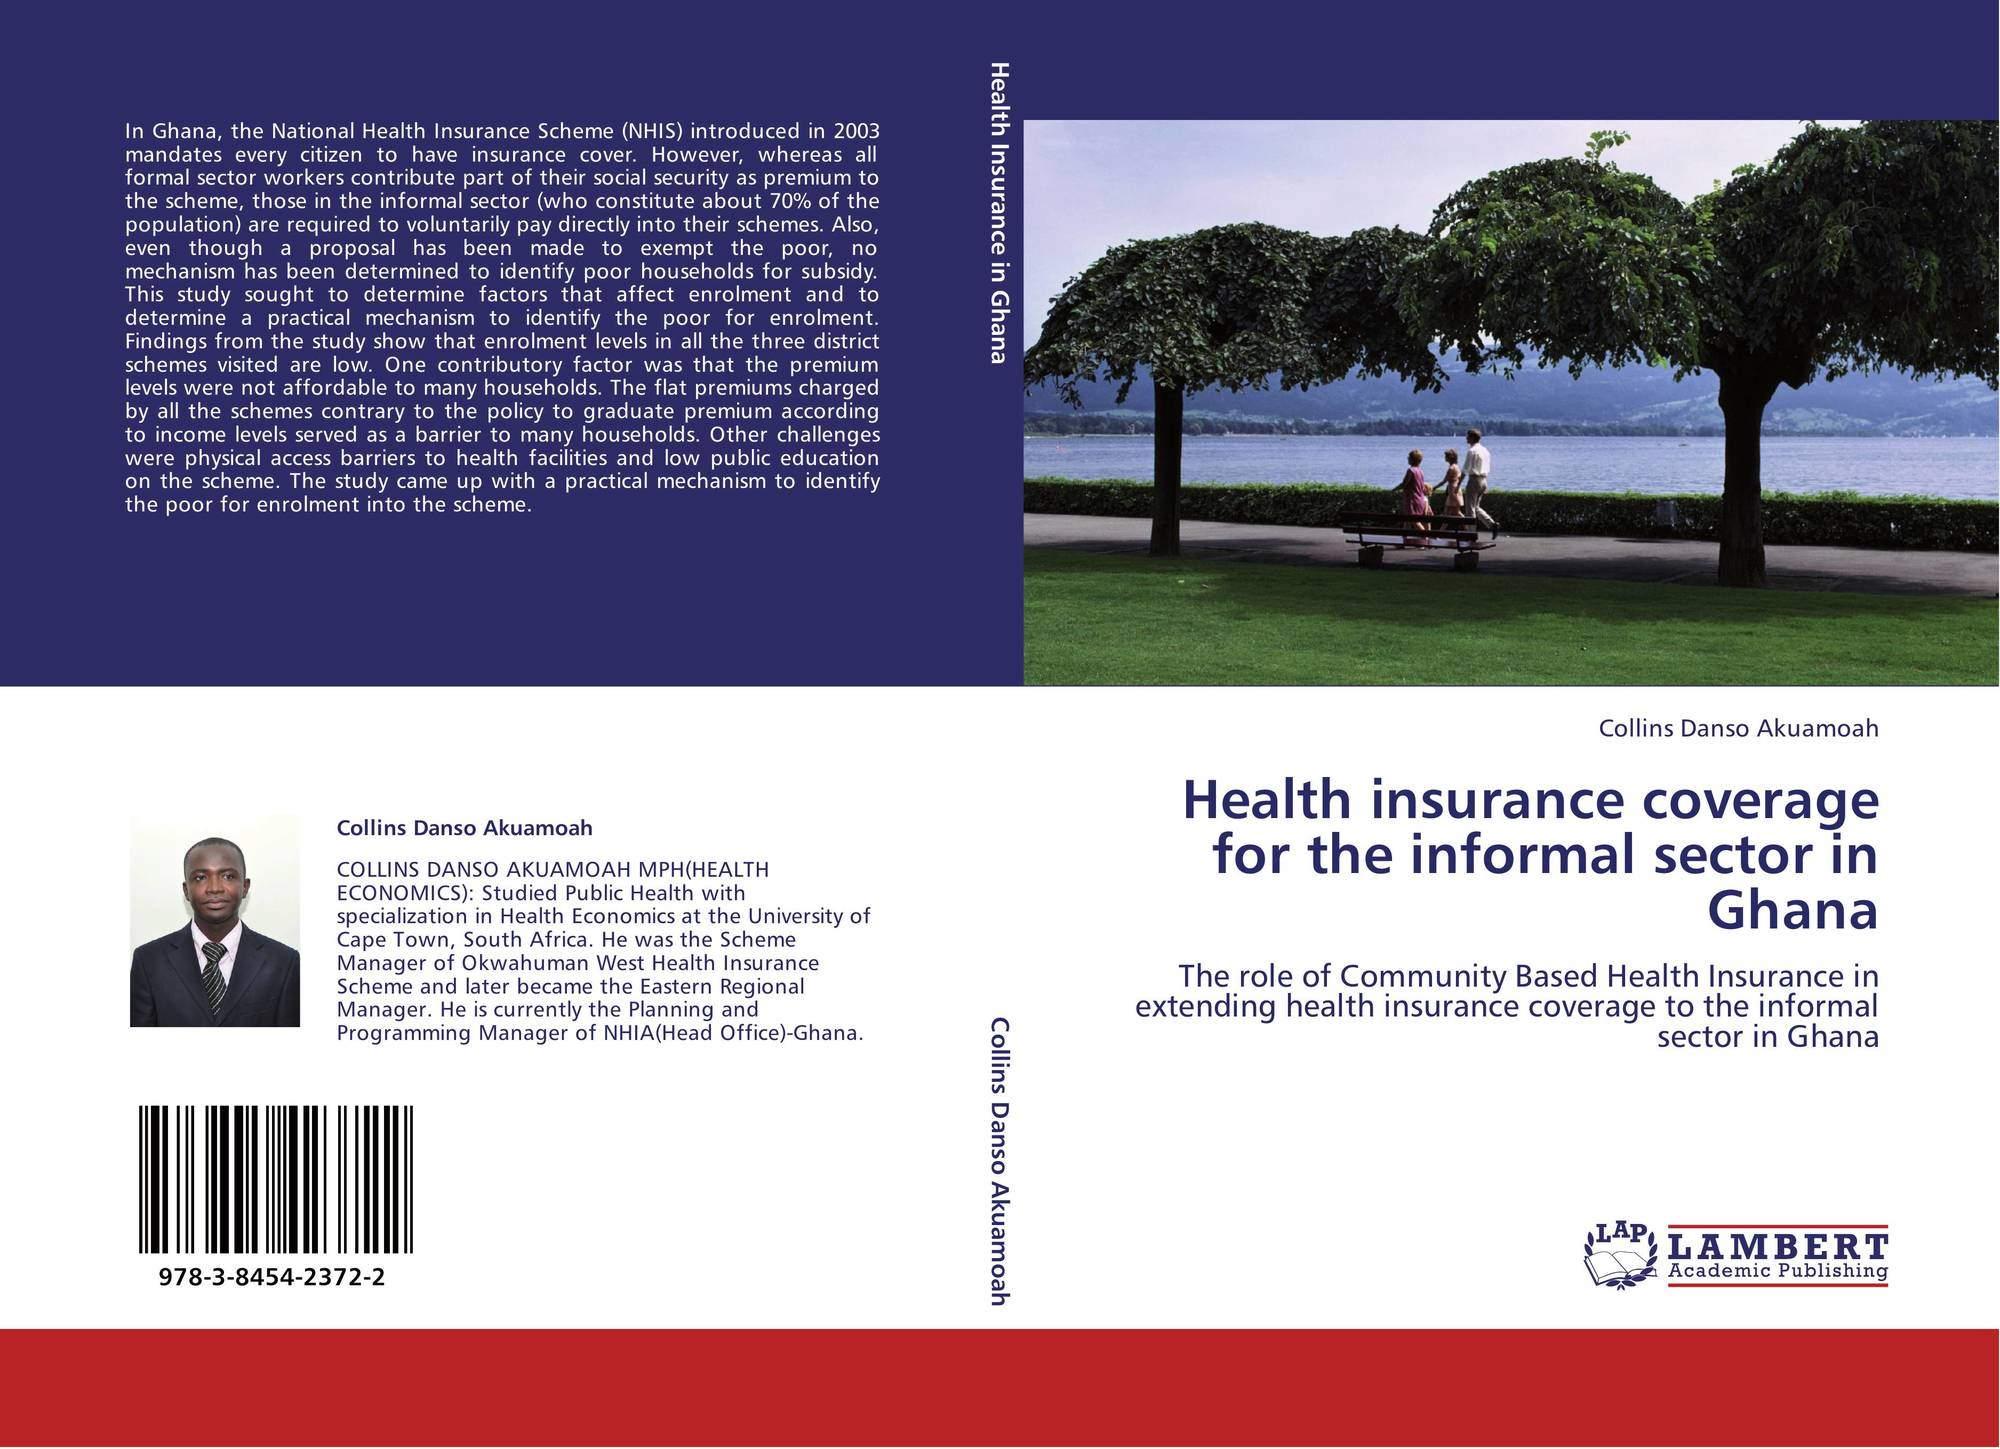 role of insurance in bangladesh The insurance industry is a key component of the economy by virtue of the amount of premiums it collects, the scale of its investment and, more fundamentally, the essential social and economic role it plays by covering personal and business risks.